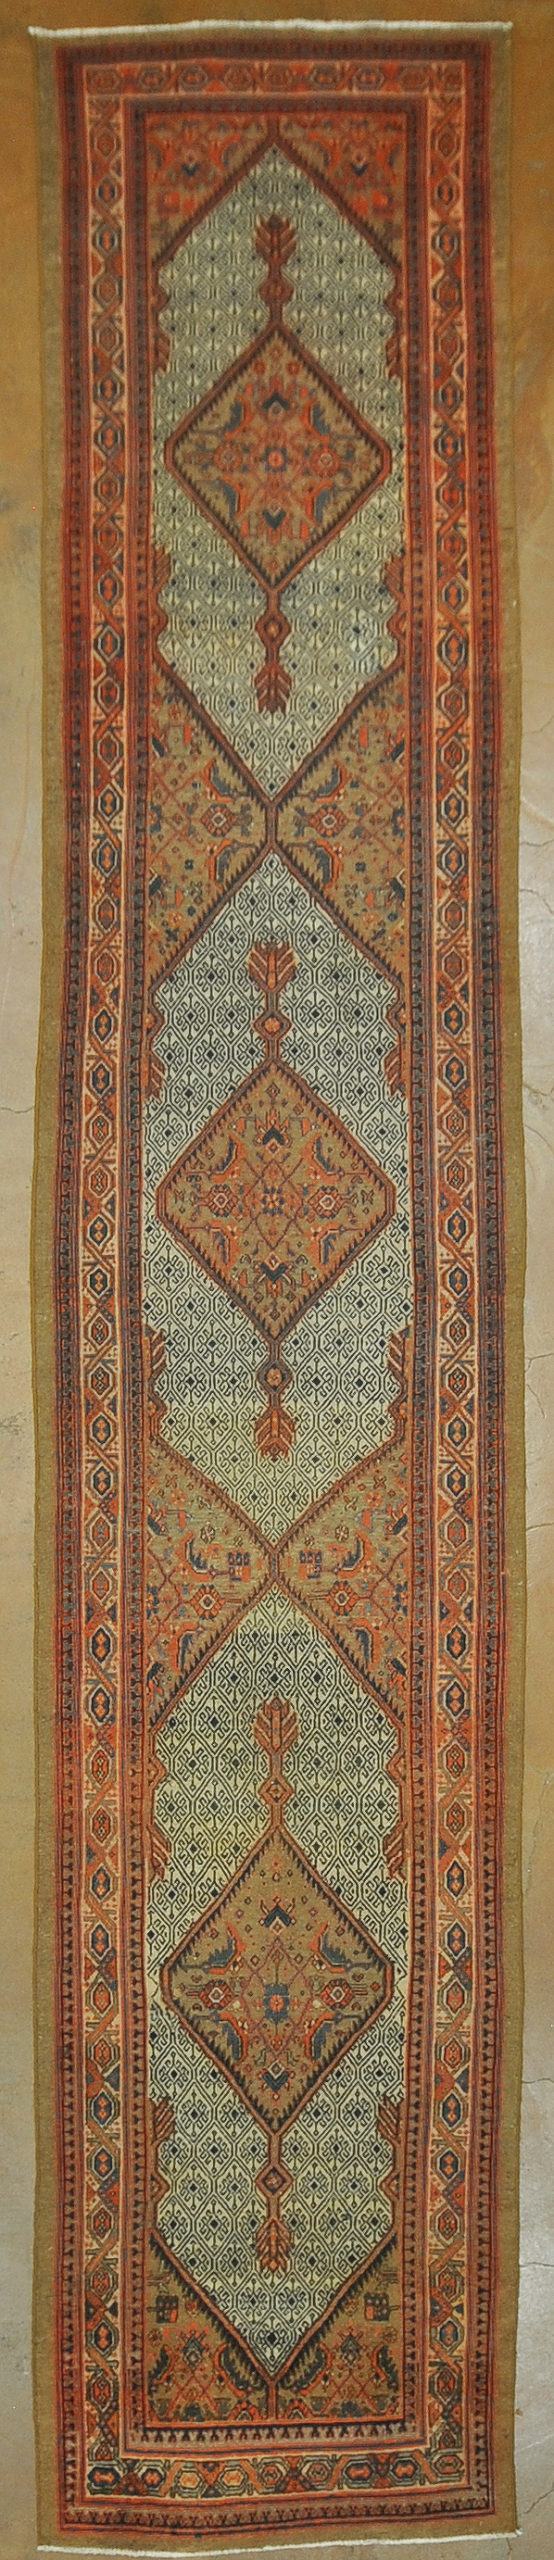 Antique Sarab Caramel Hair rugs and more oriental carpet 34947-